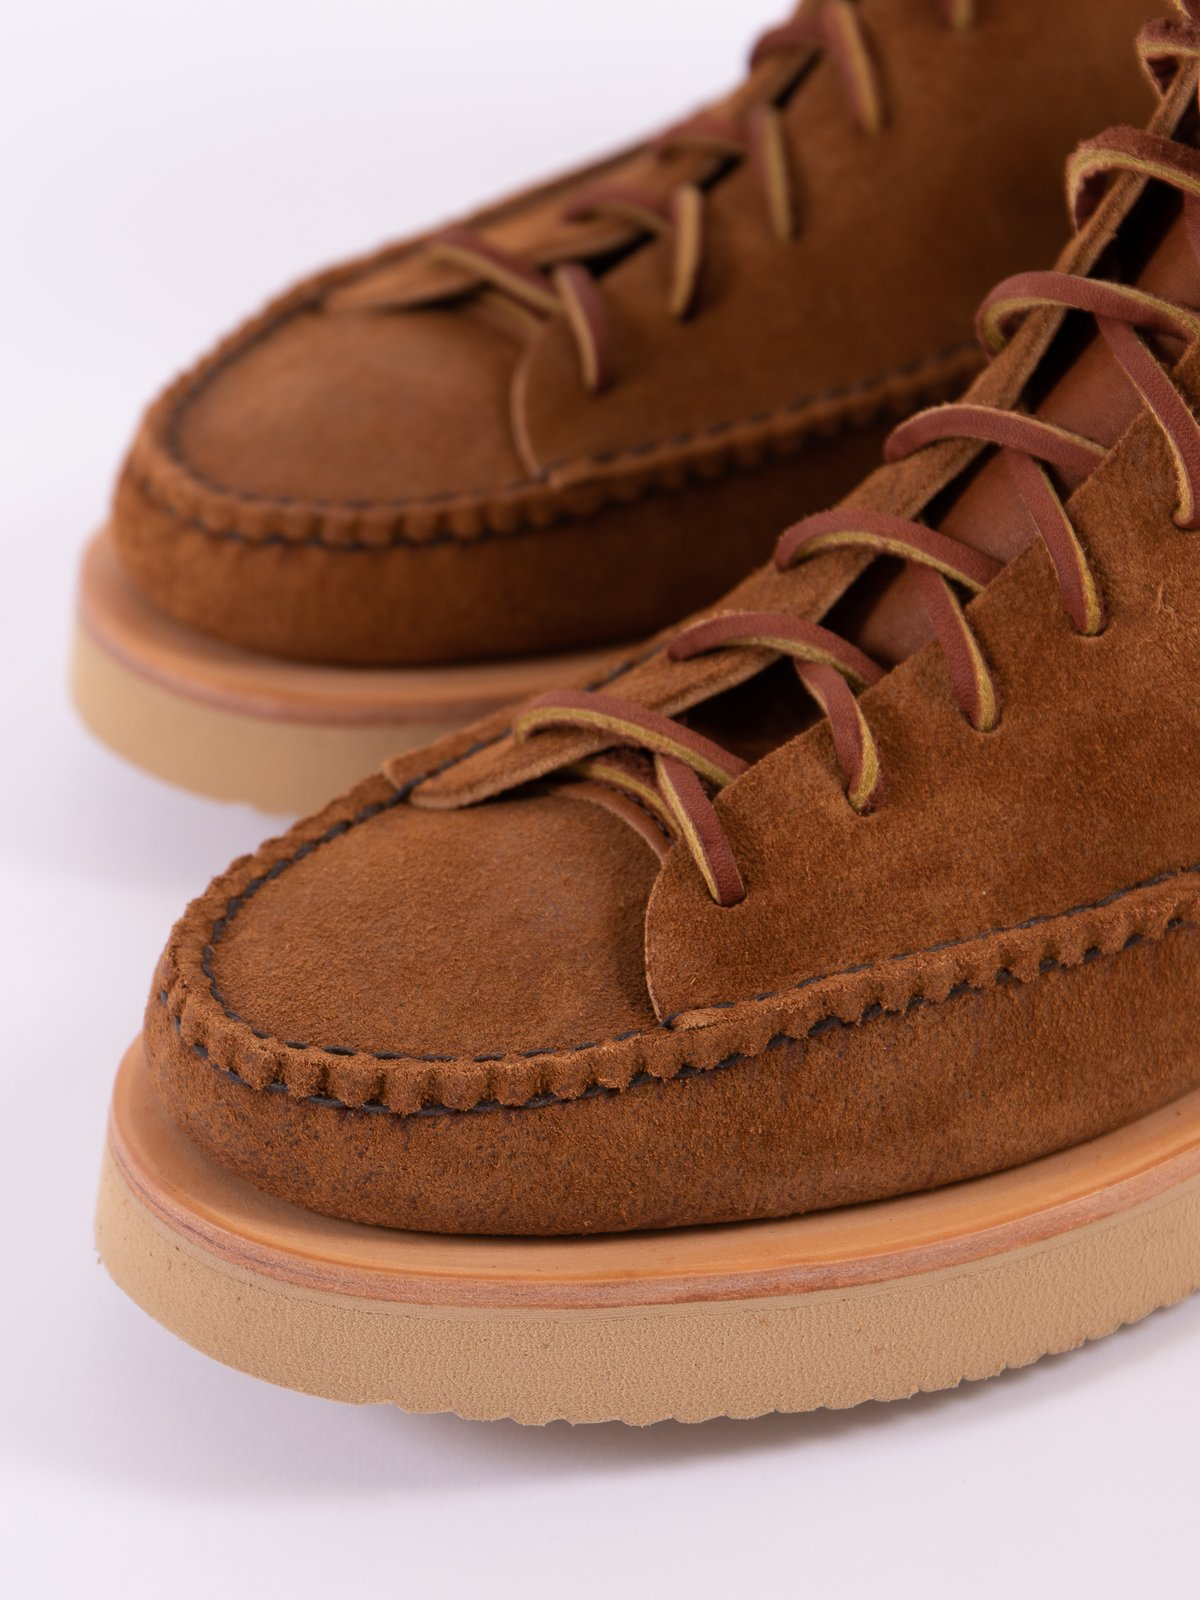 Golden Brown All Handsewn Sneaker Moc High Boot - Image 4